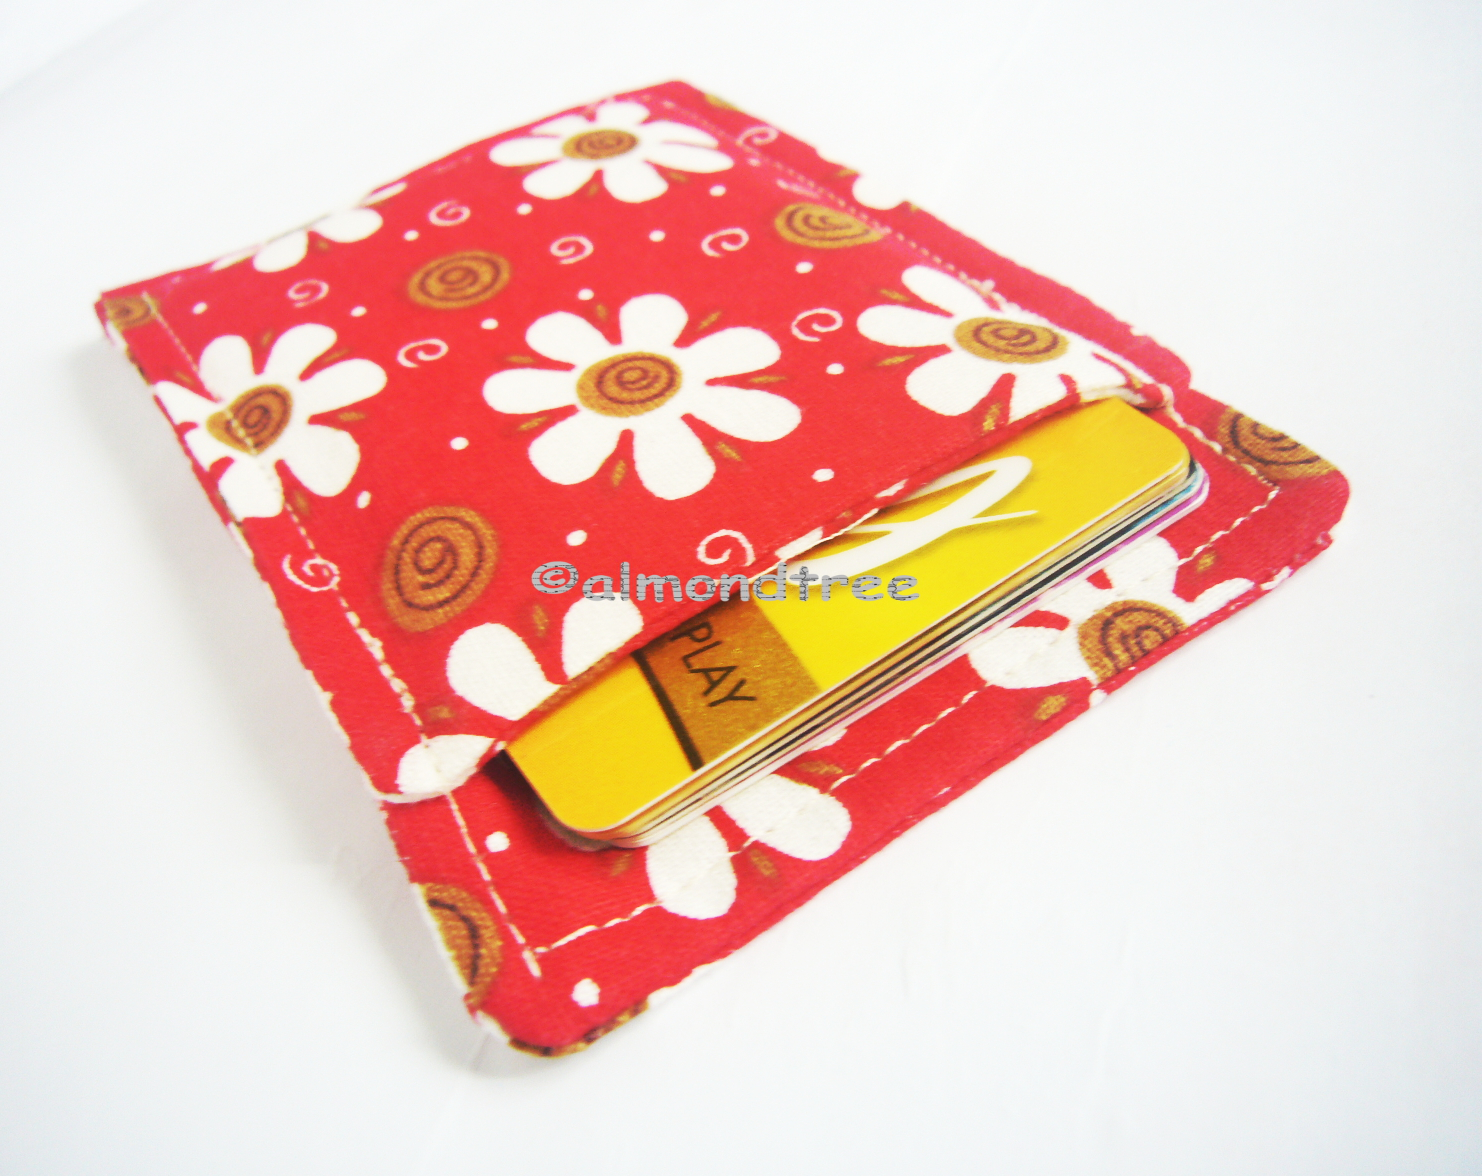 ff5617ac0b4f Red flowers slim card wallet, portefeuille, minimalist credit card case,  card holder, id1360696, front pocket wallet, moneystash from almondtree